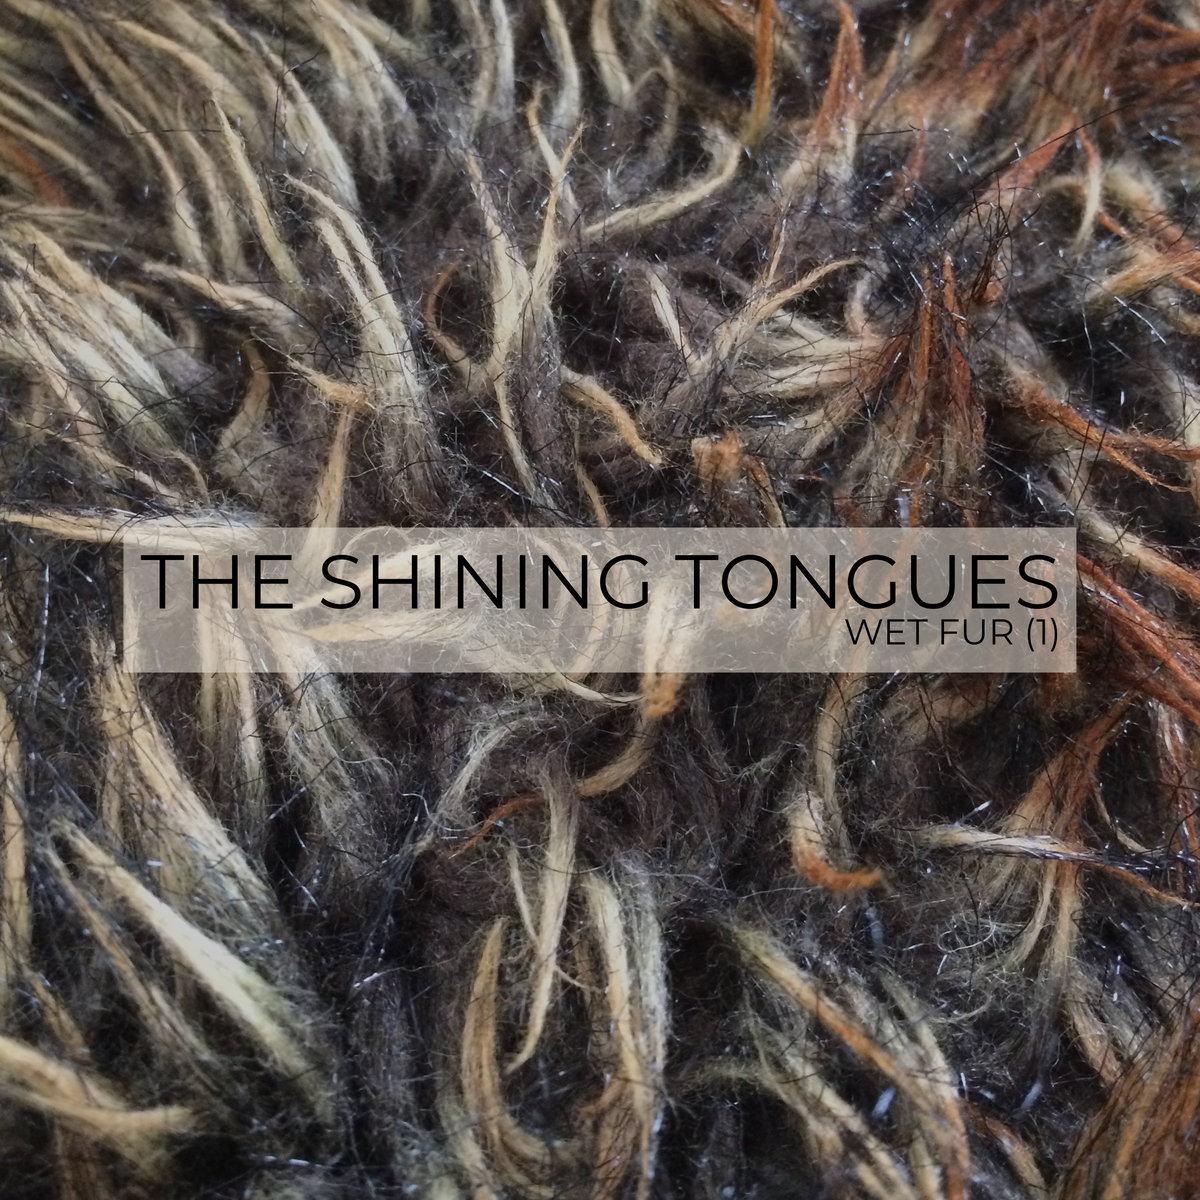 Wet Fur (1) by The Shining Tongues